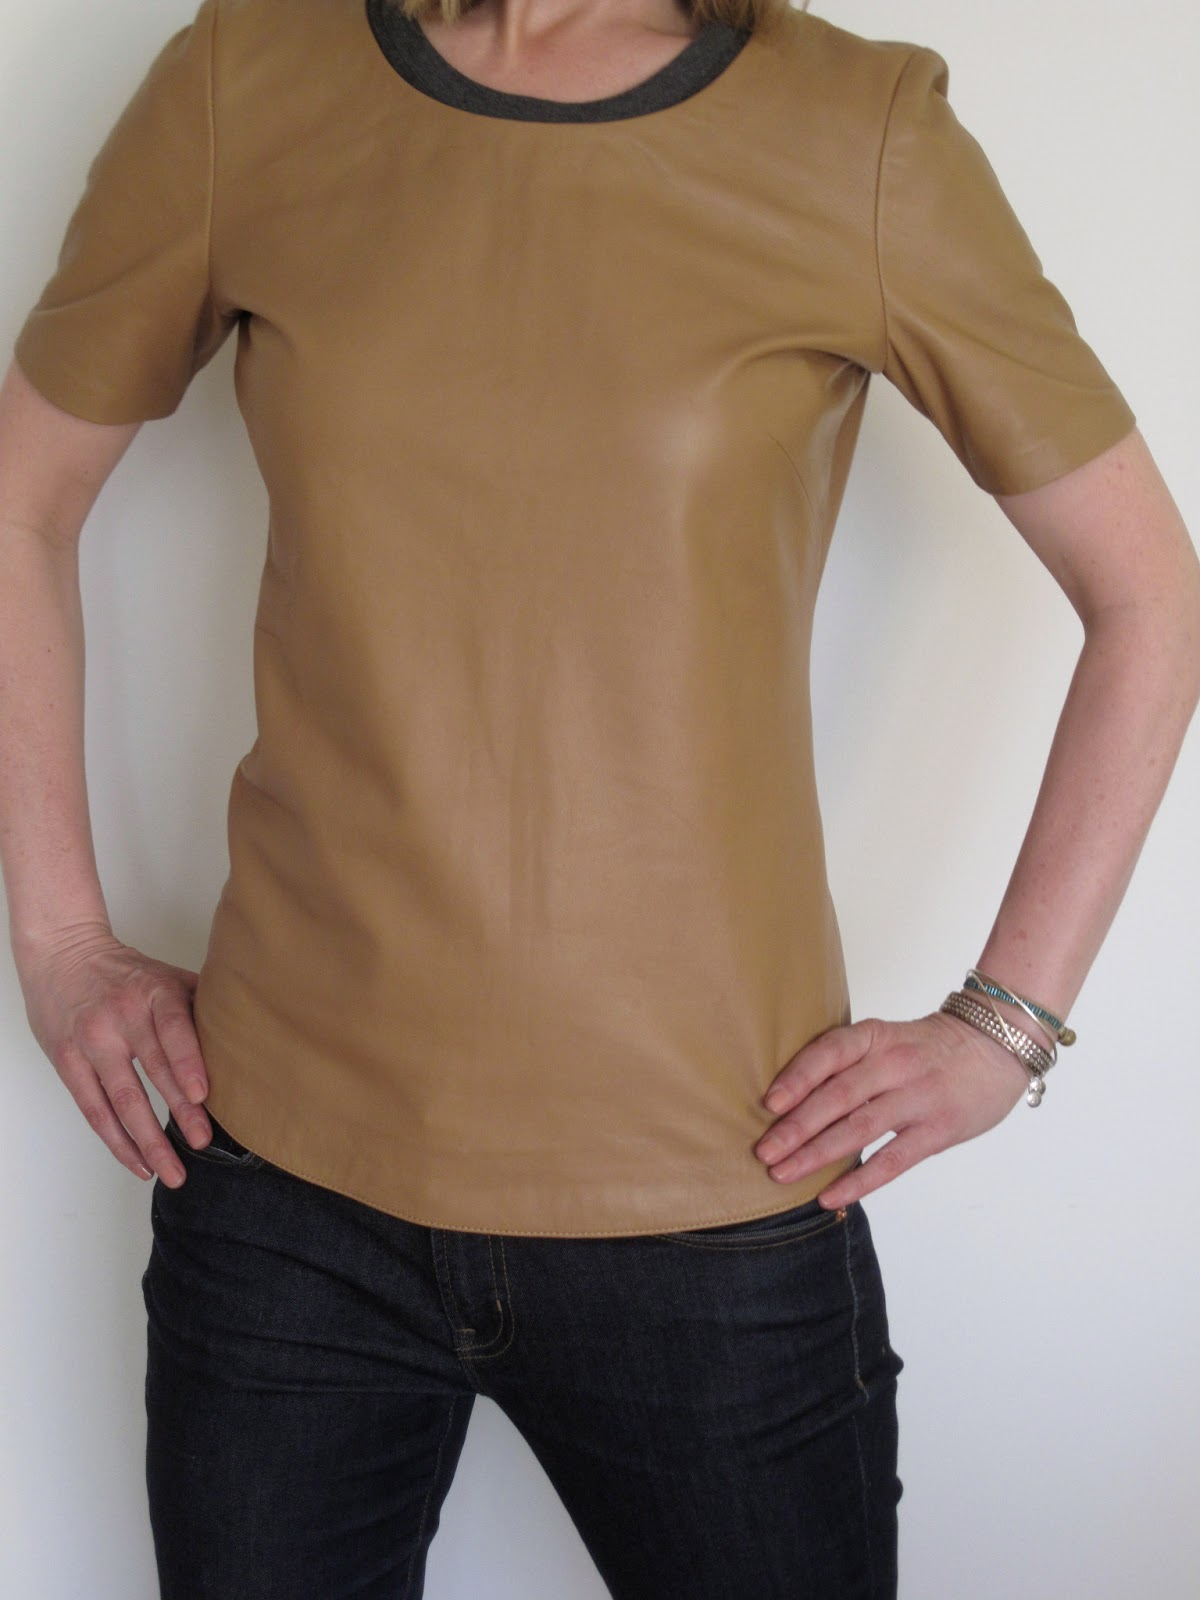 How to wear a leather t shirt that 39 s not my age for Wear my t shirt